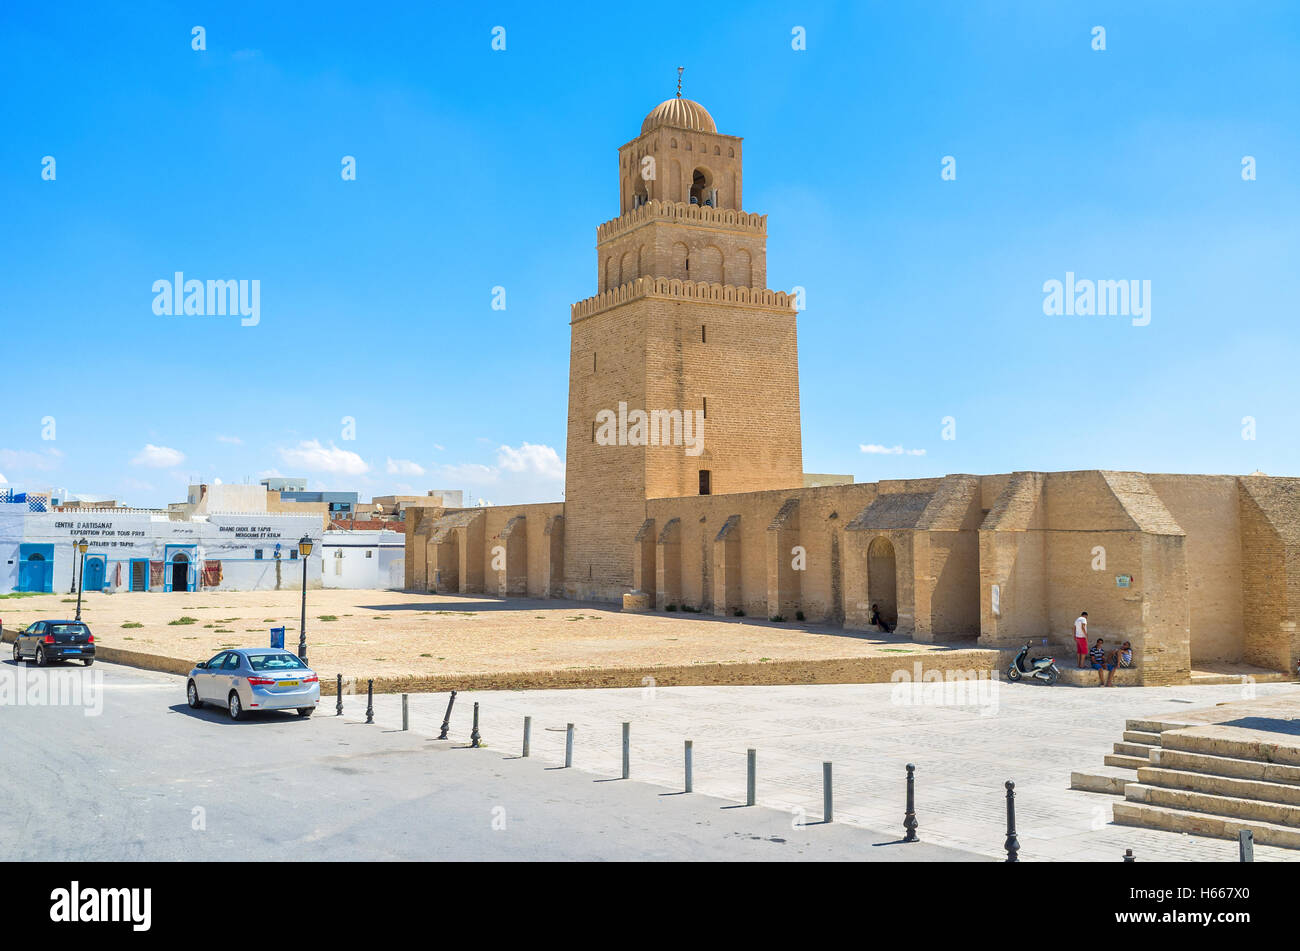 The medieval Grand Mosque looks like the defensive fortress with a high ramparts, huge minaret and large courtyard - Stock Image